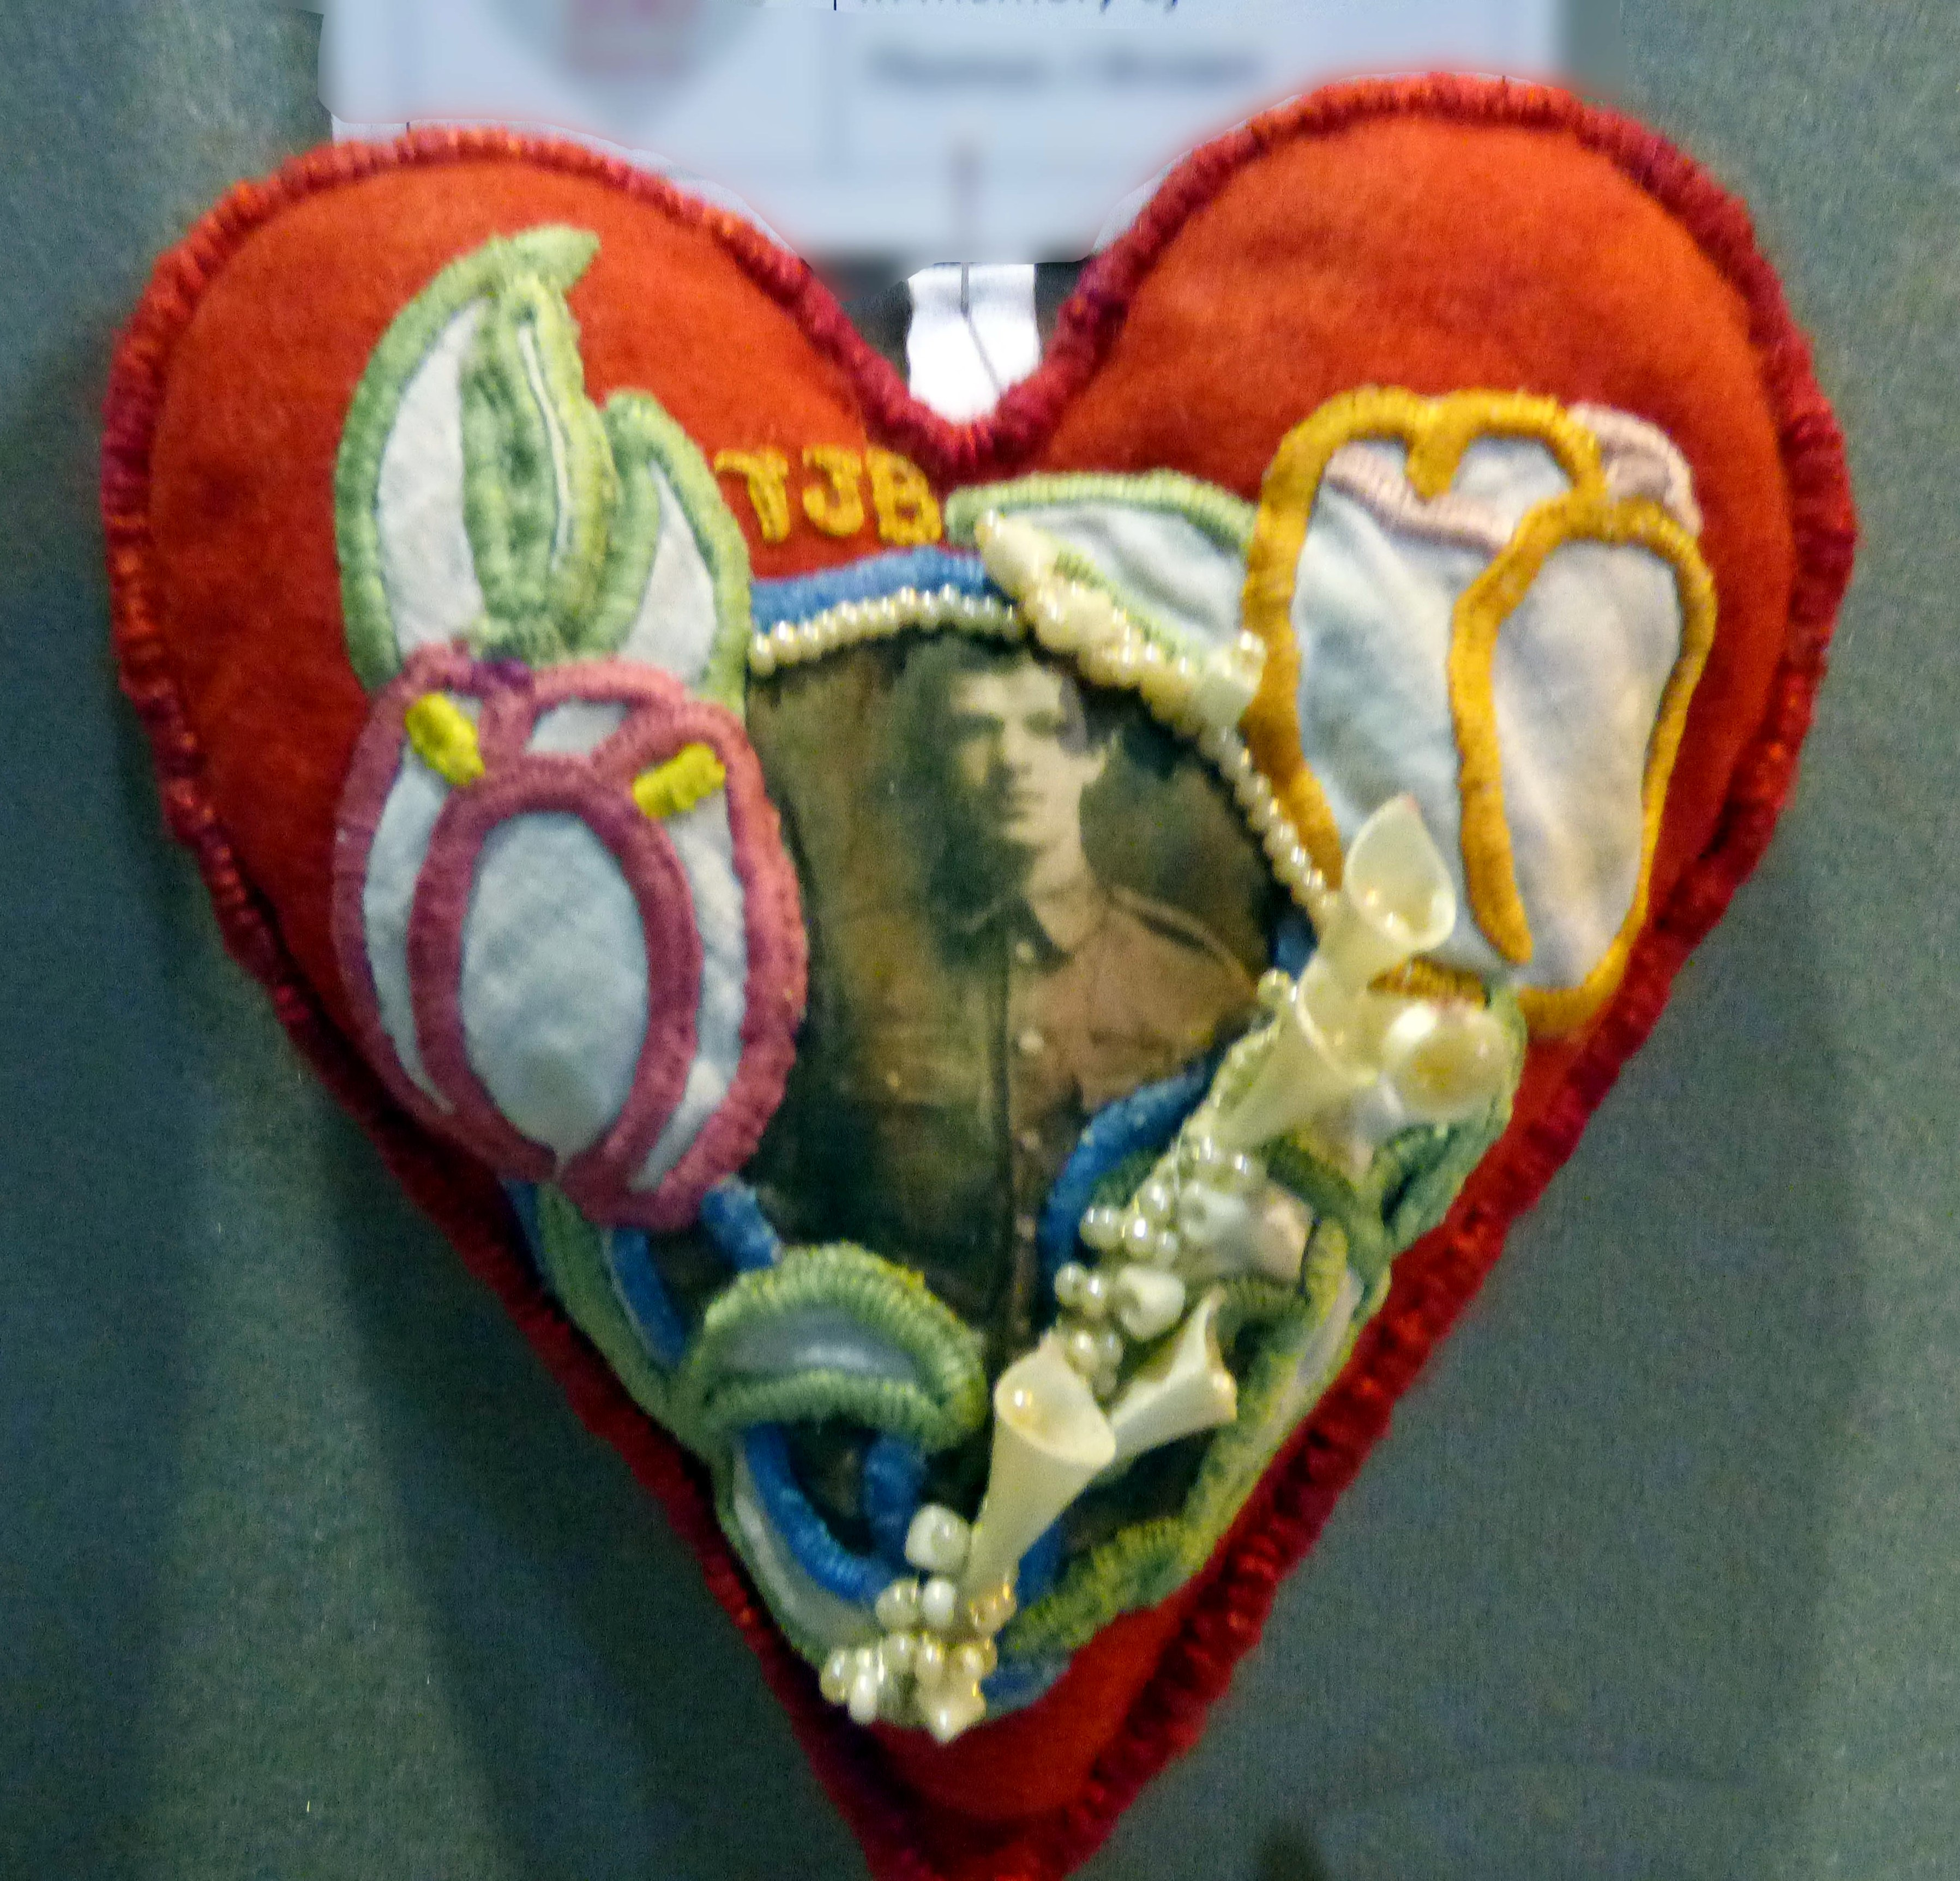 GREAT UNCLE TOM by Hilary Hollingsworth, in memory of Thomas J Brown, 100 Hearts exhibition, Liverpool Cathedral, Sept 2018